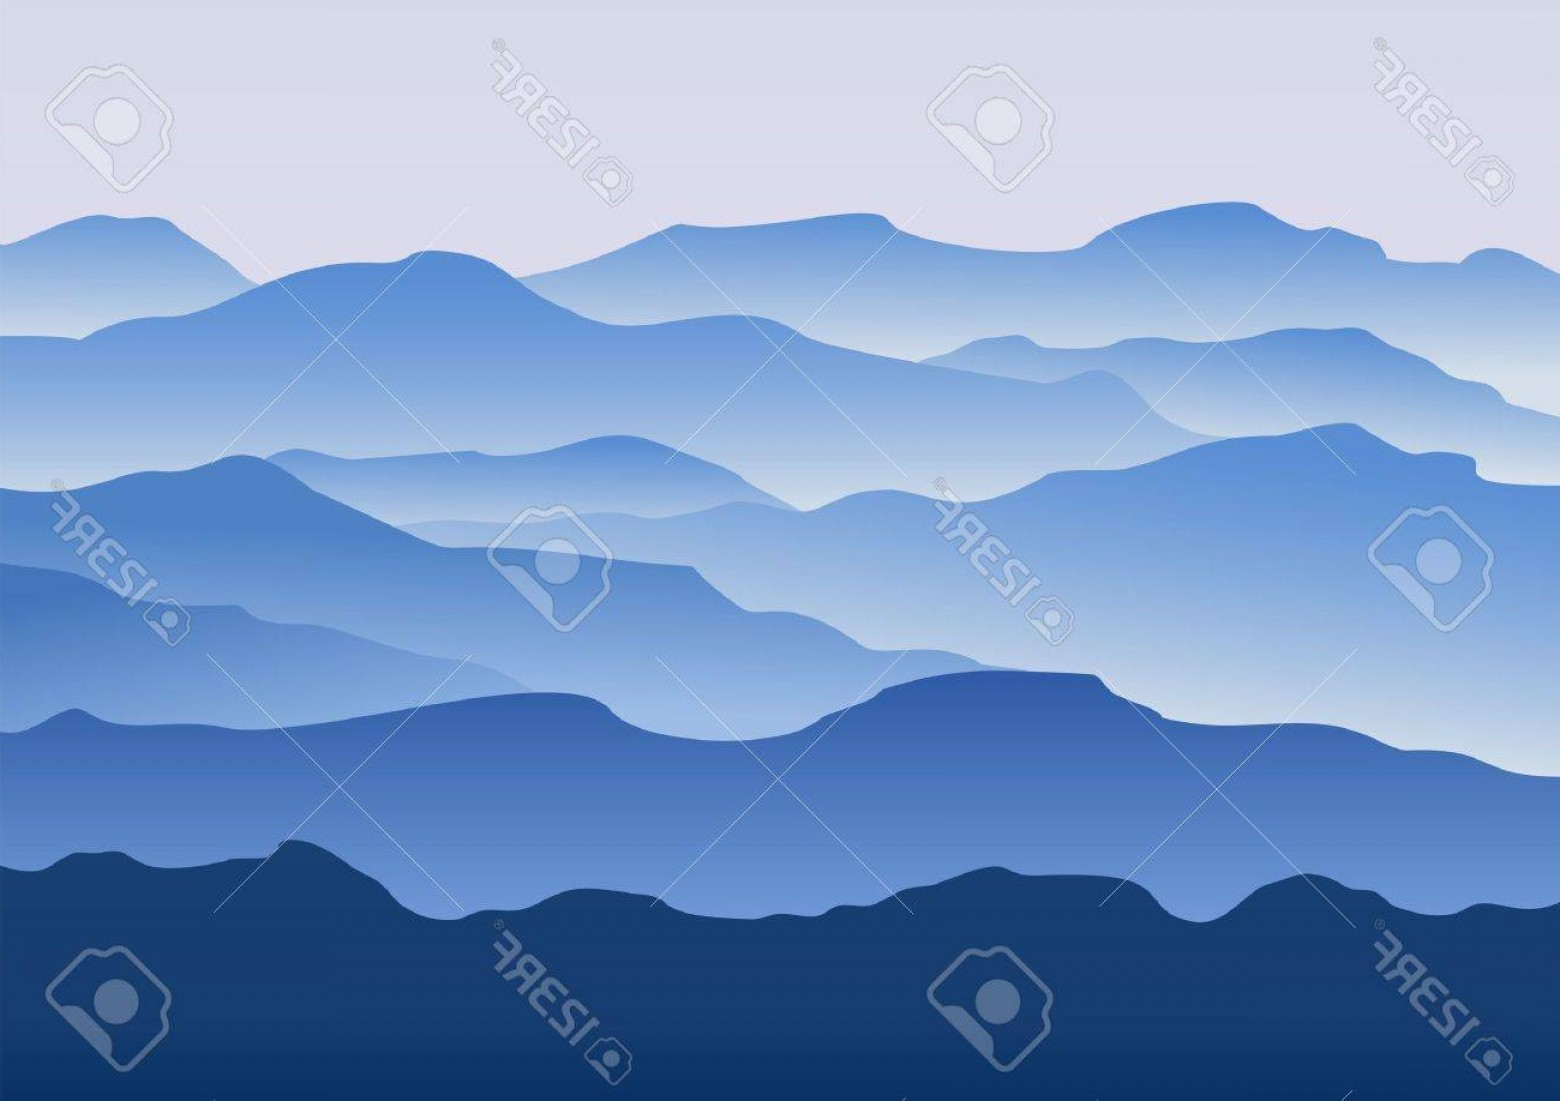 Mountain Range Silhouette Vector Free: Stylish Photosilhouette Of The Mountains In The Morning In The Vector